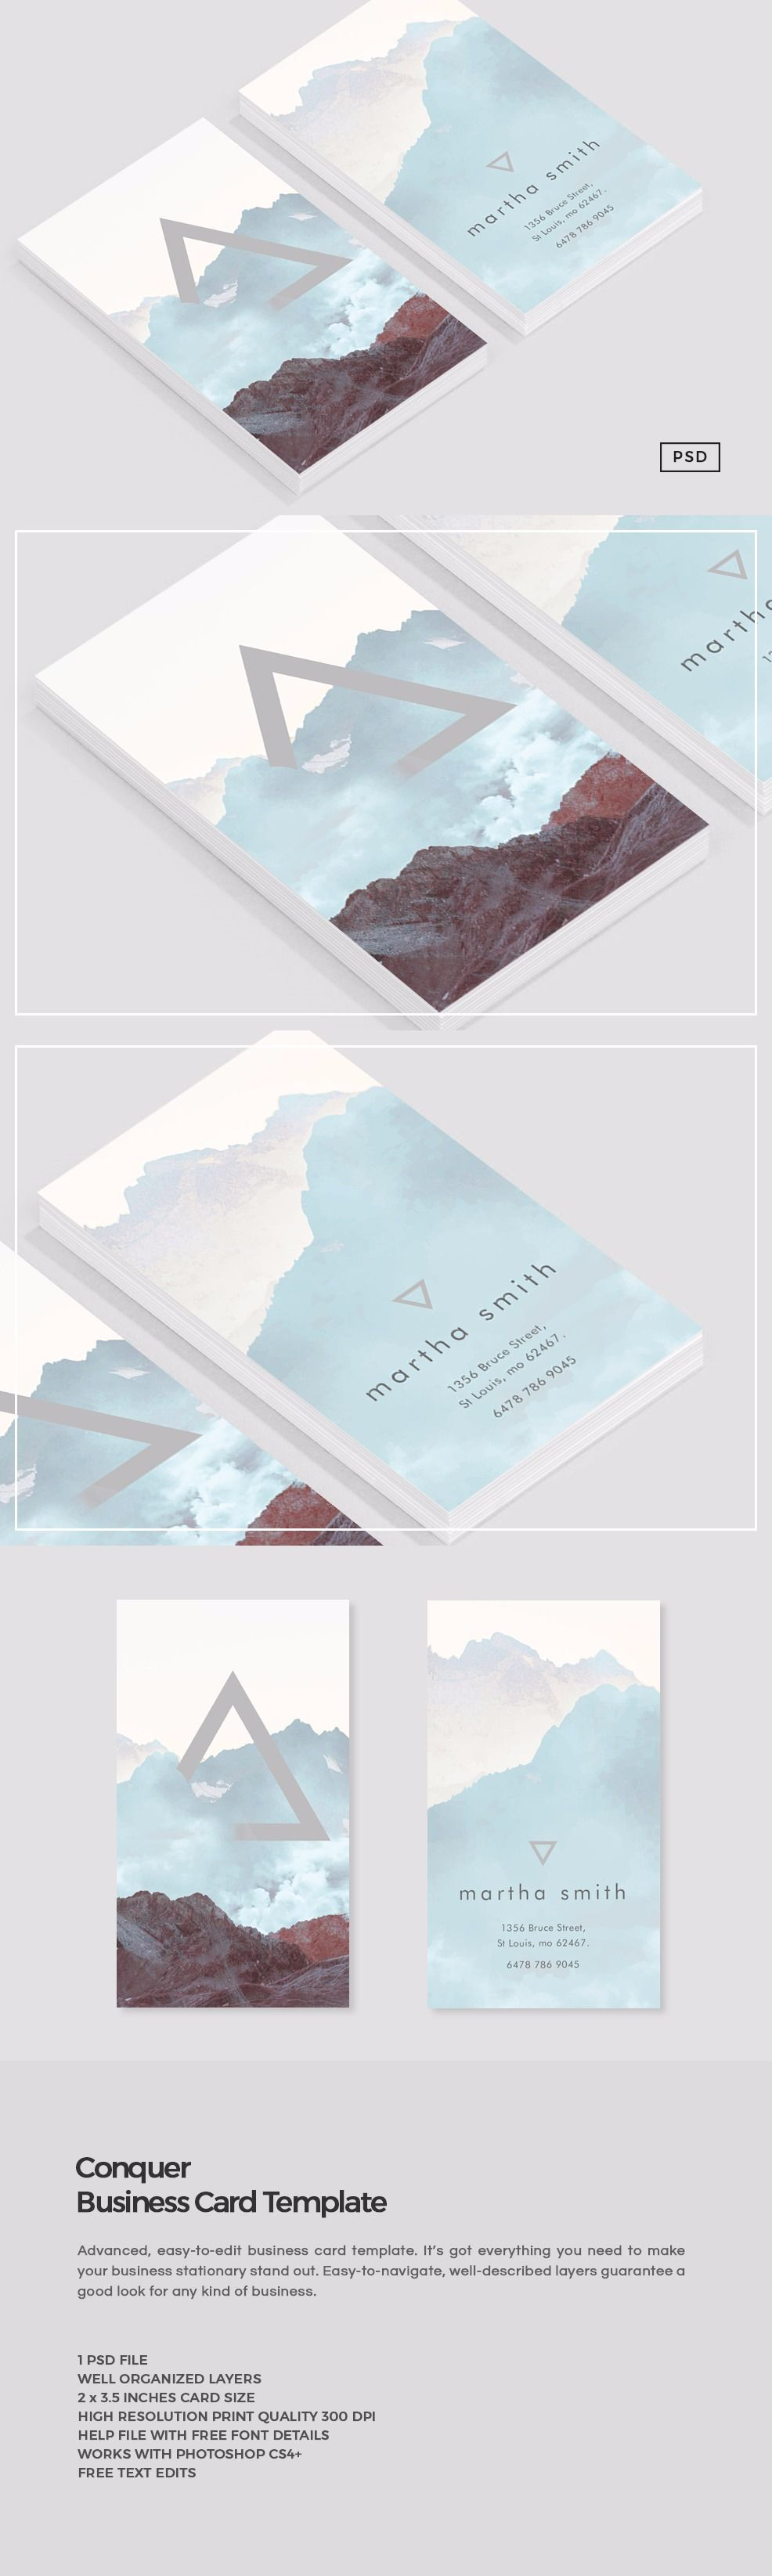 Conquer business card template pinterest cartes de visita conquer business card psd template for photoshop its suitable for a variety of fields reheart Gallery